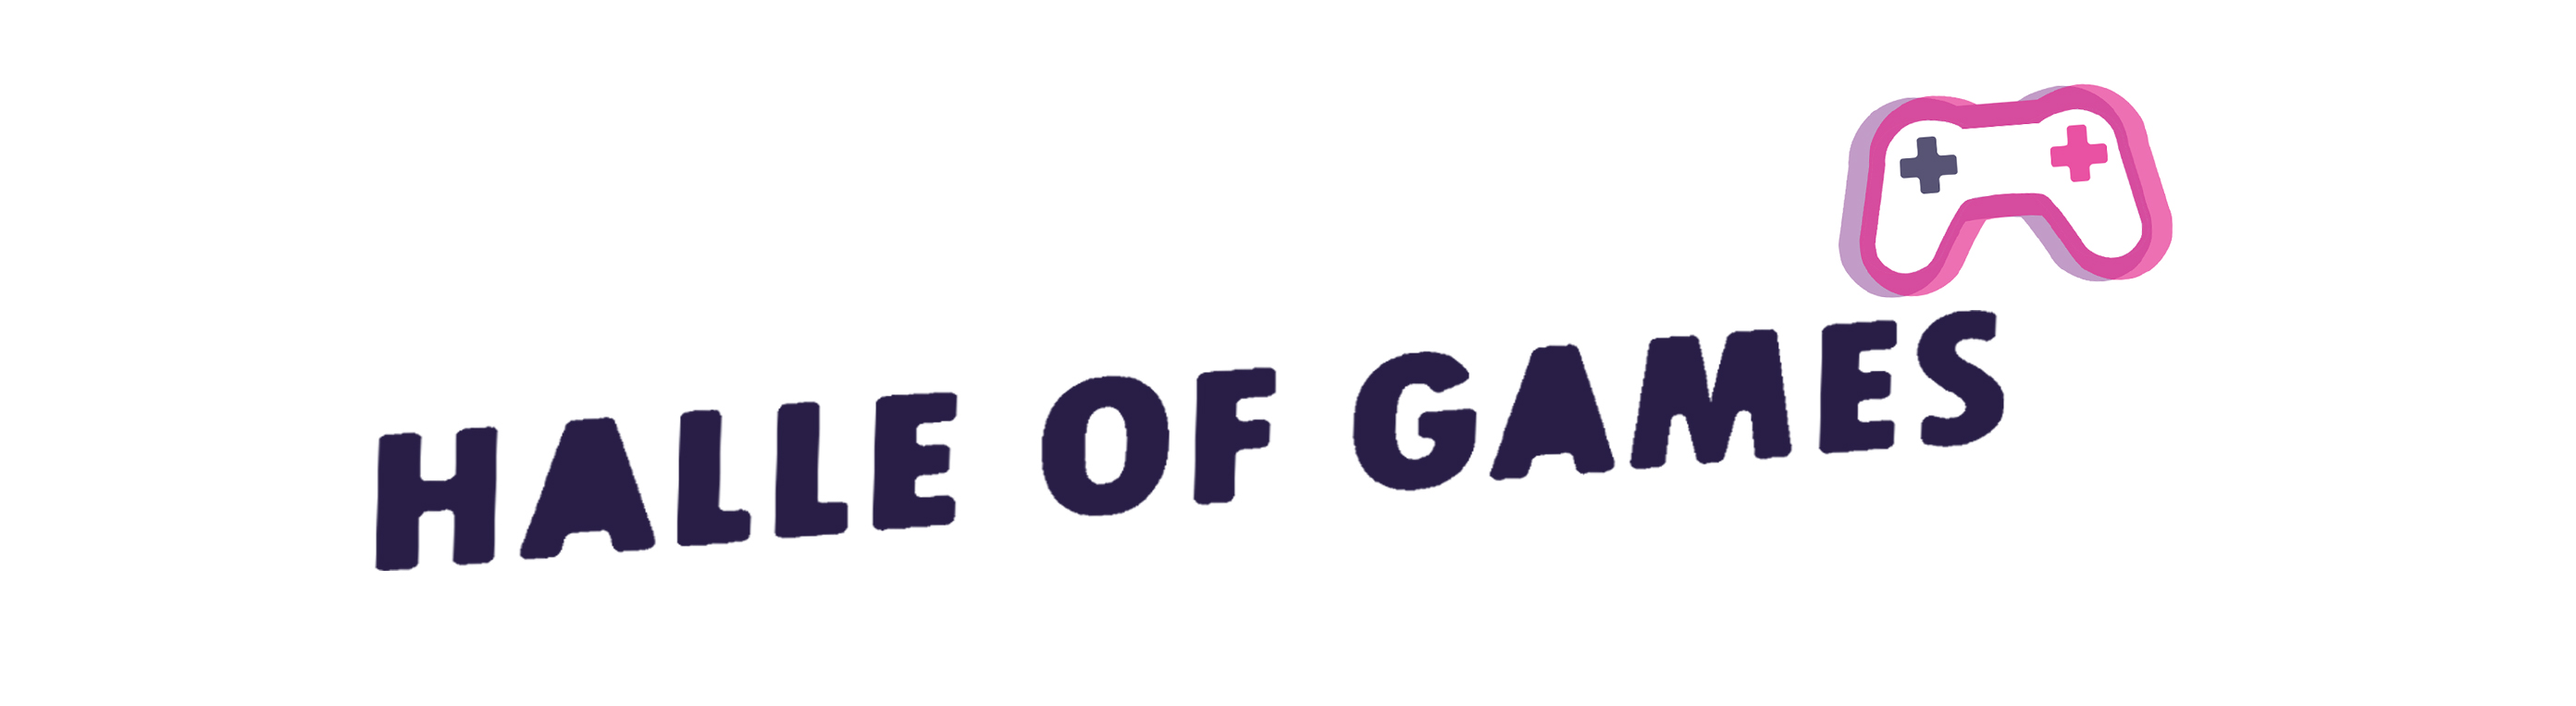 Halle of Games